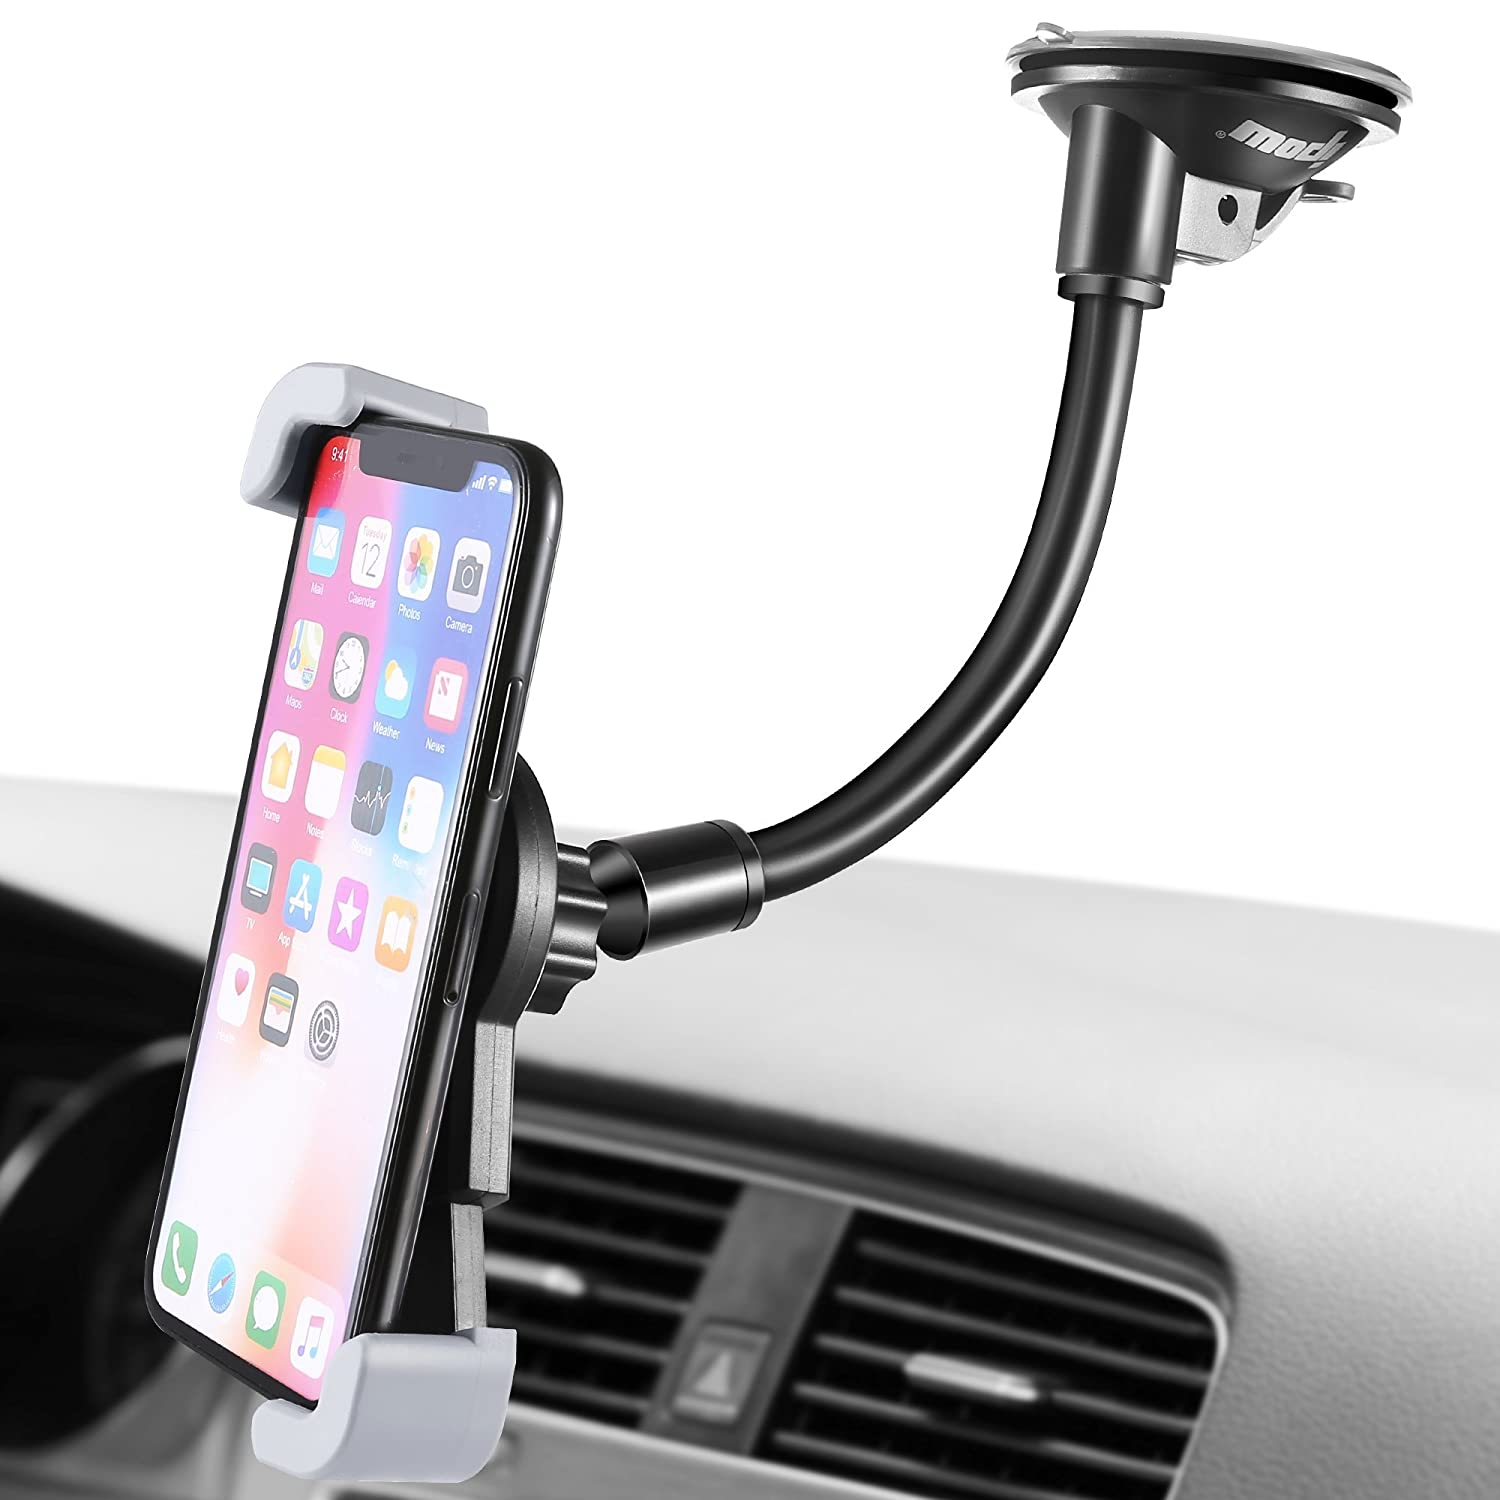 IPOW Upgraded X-Shaped Double Clamp Universal Long Shockproof Arm Phone Car Mount Windshield/Dash With Strong Suction Cup,Cell Phone Holder Compatible With iPhone 8 8 Plus X 7 7 Plus 6Galaxy S9 S8 IP1-201501093